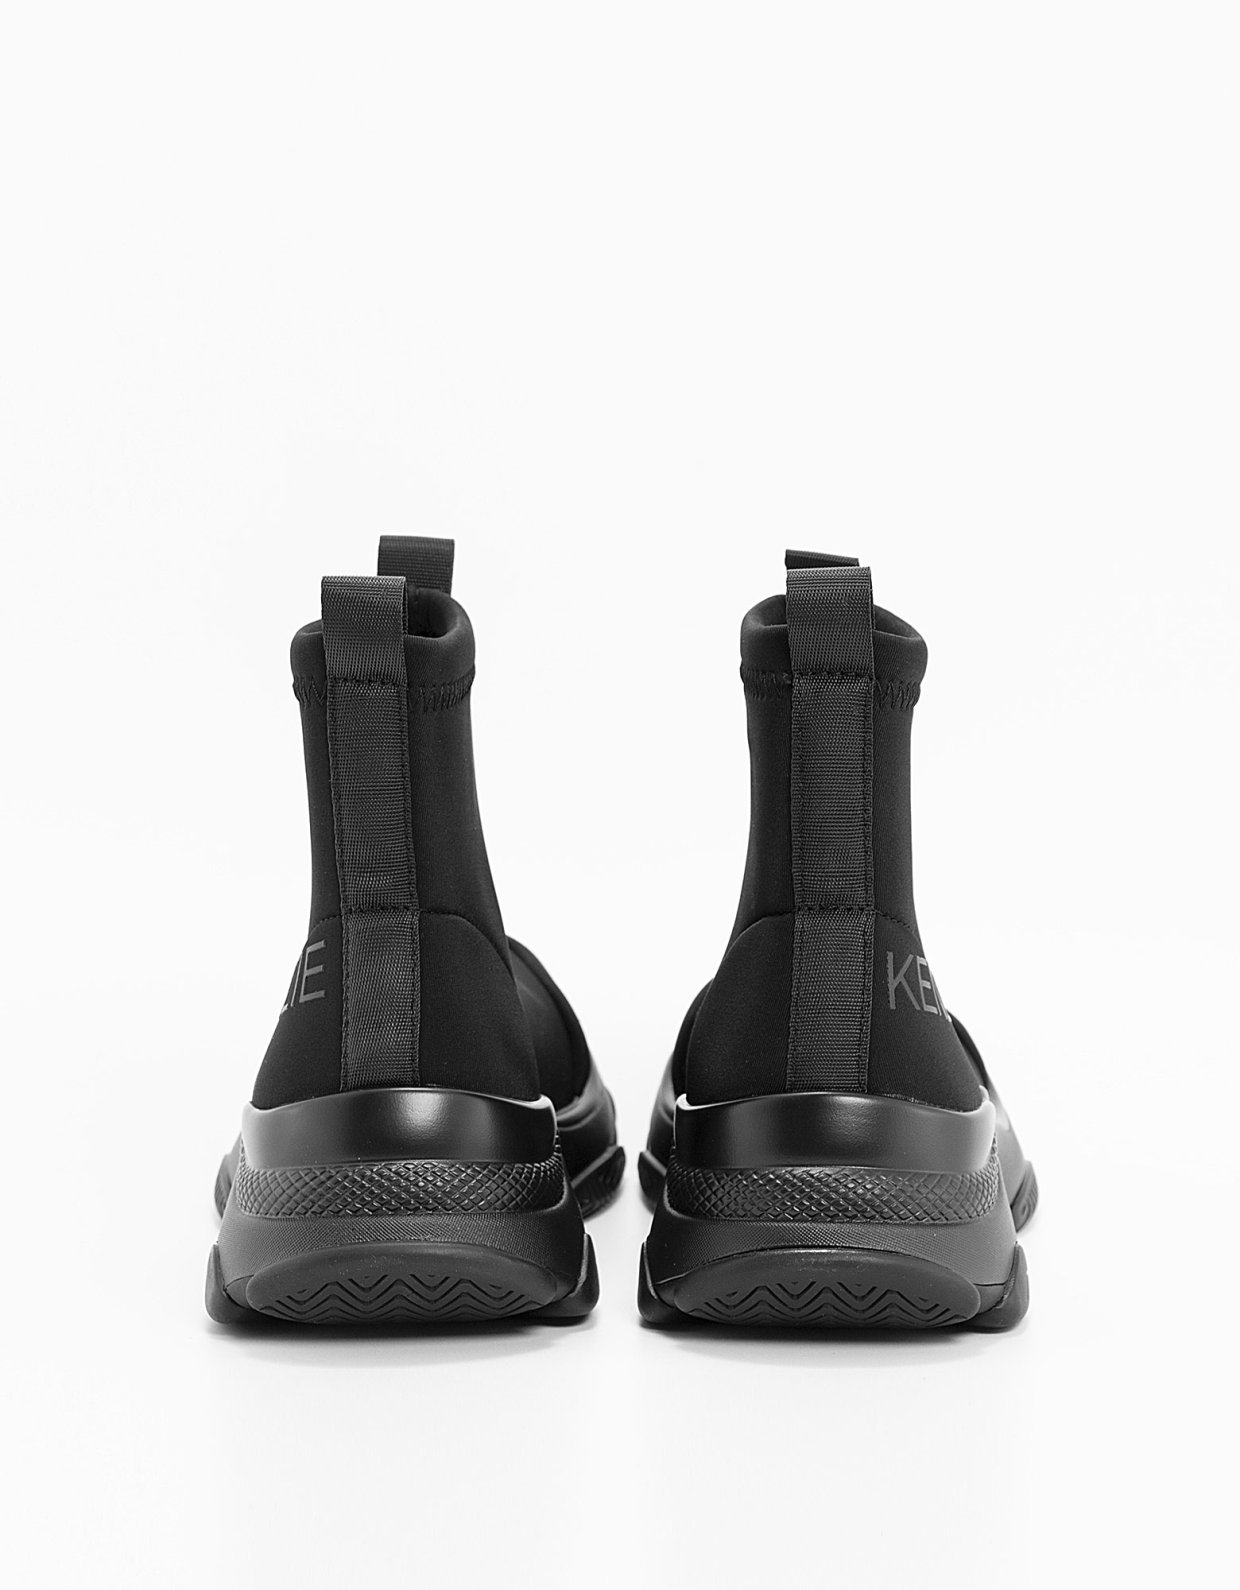 Kendall + Kylie Garin shoes black